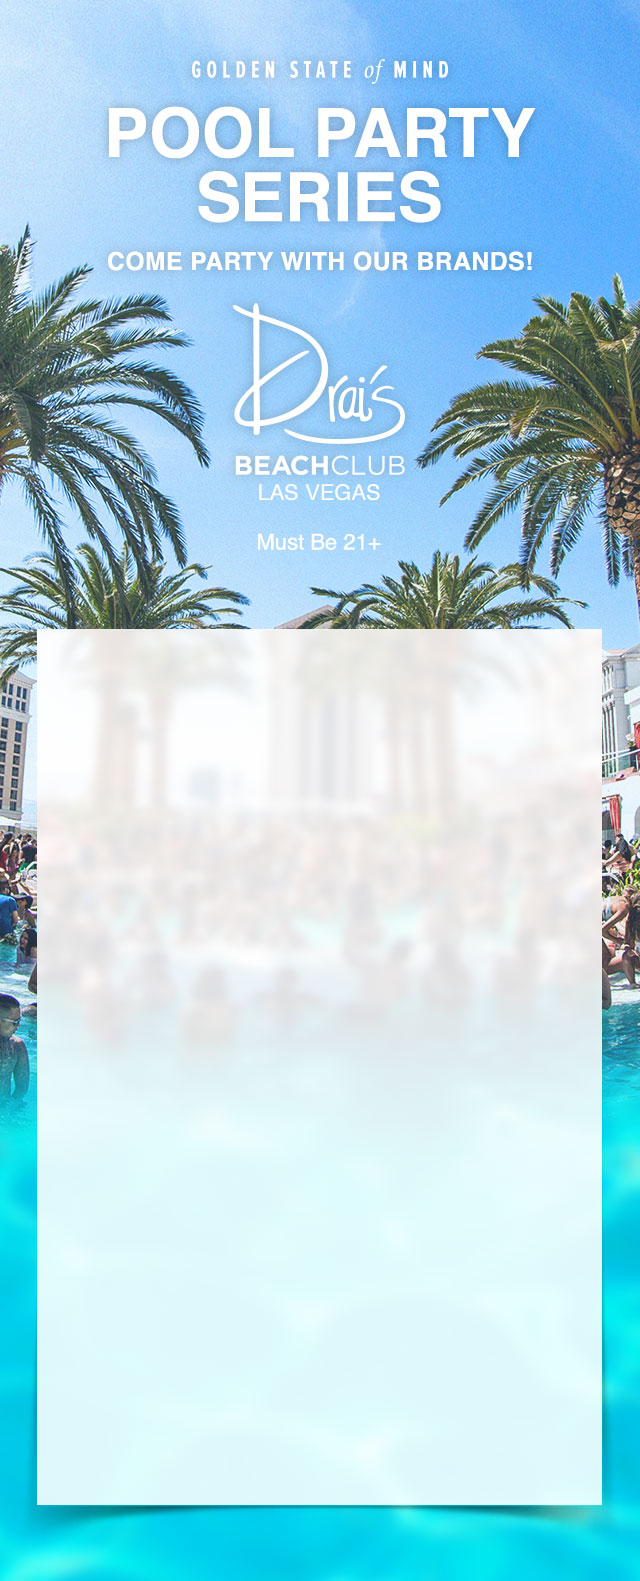 Pool Parties Drais Beach Club Page Background Zone 1